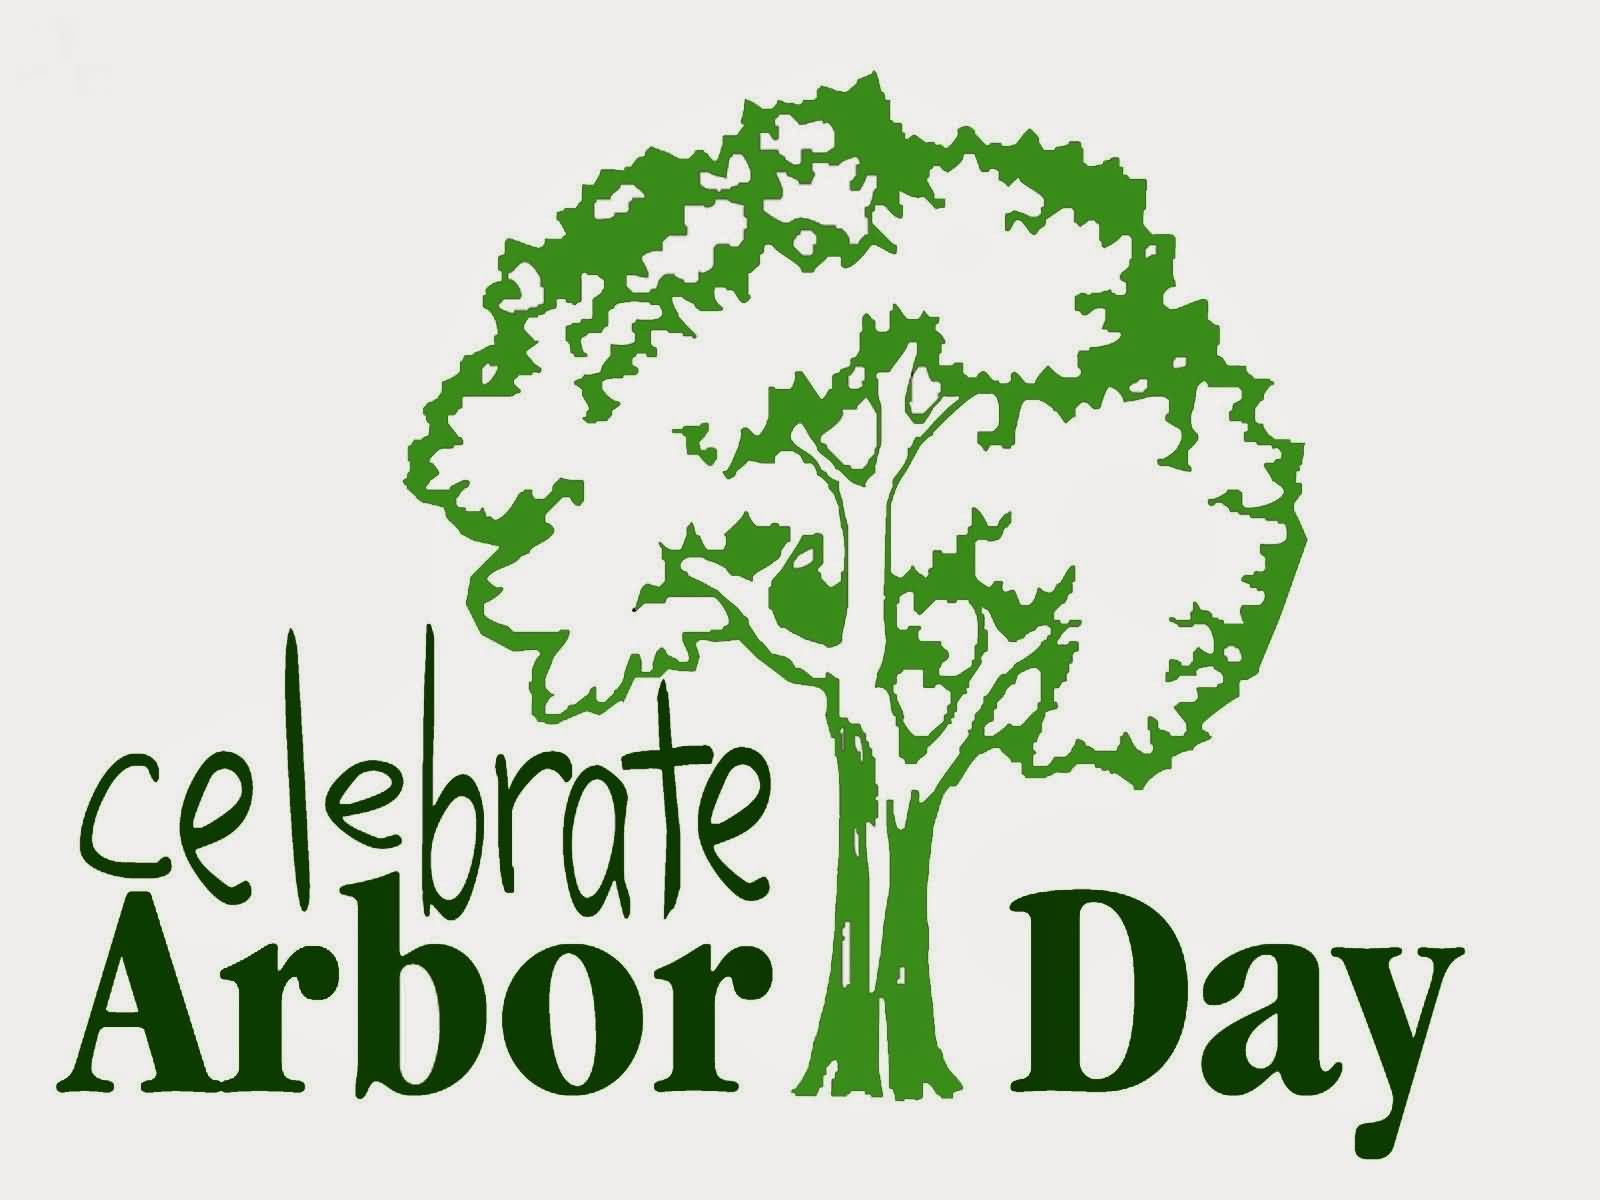 Green Day clipart arbor day Celebrate About Clipart Day All